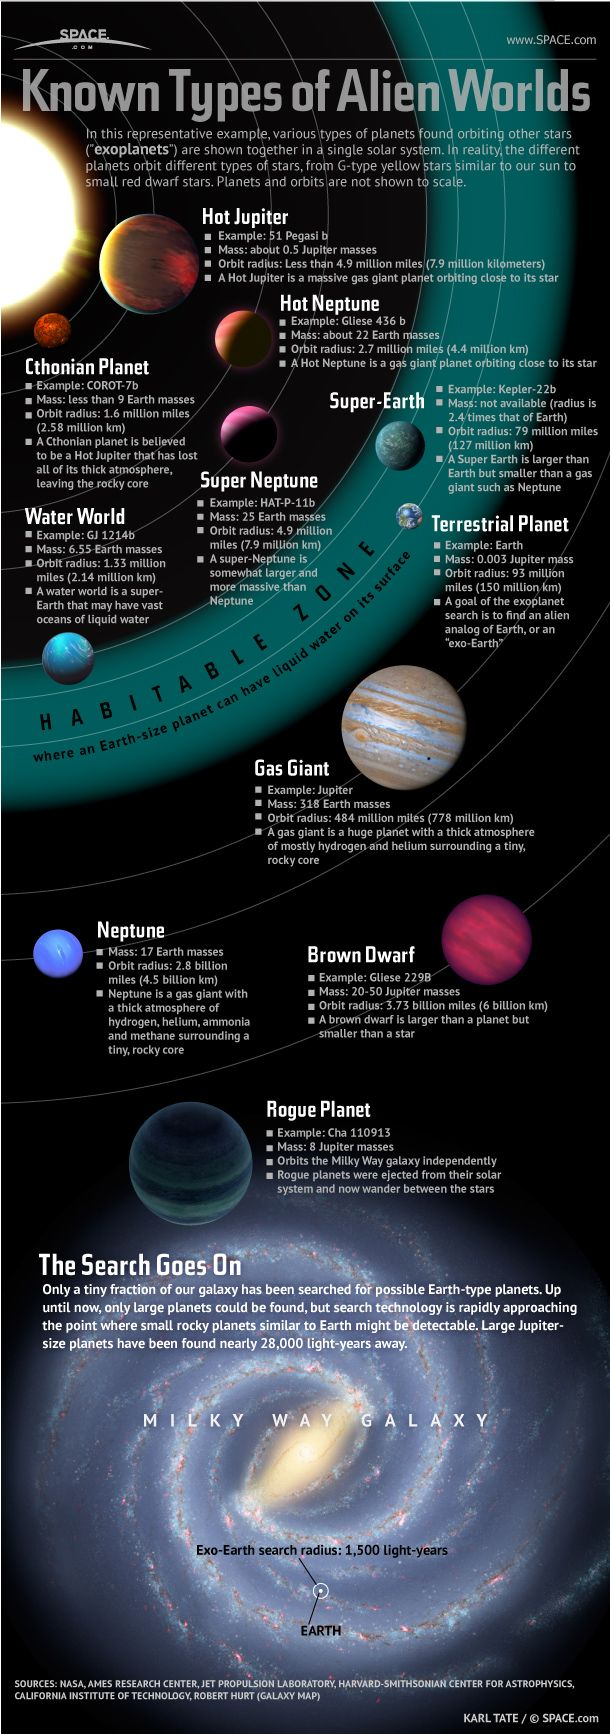 Planets Large and Small Populate Our Galaxy (Infographic). Astronomers have discovered more than 700 alien planets beyond the solar system, and the count is rising all the time. Some are large and hot, and others are smaller and cooler, but scientists are still on the lookout for an Earth twin.